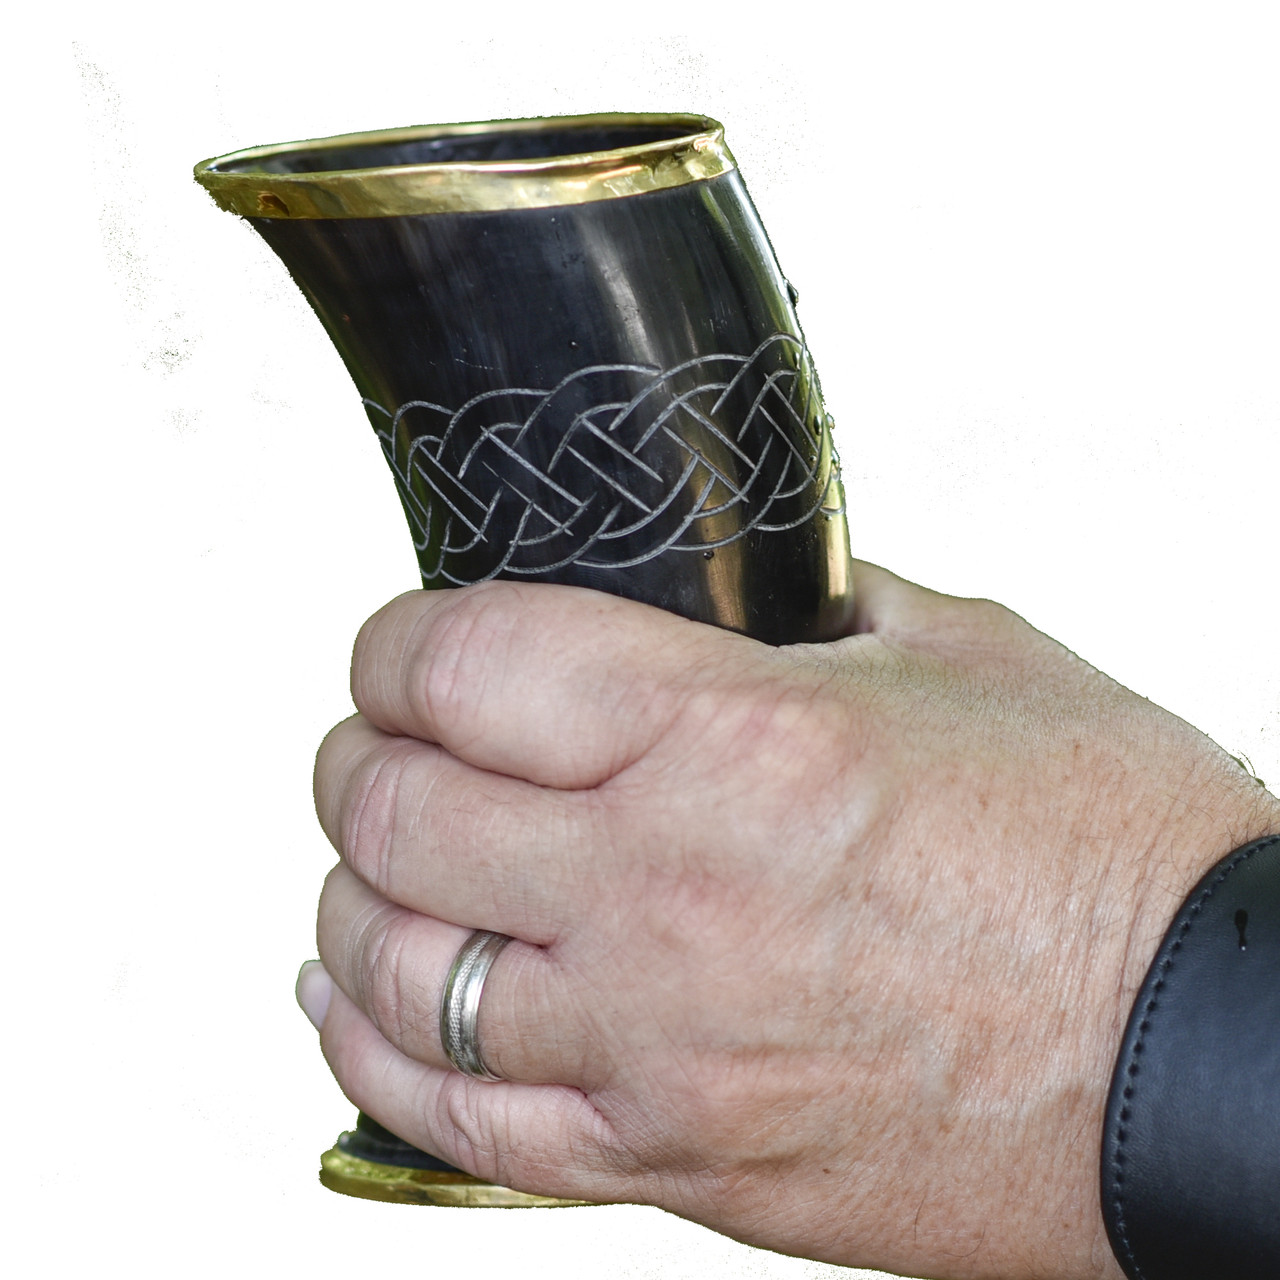 The Hooded Raven 'Ñ¢ Ceremonial Viking Drinking Horn Cup Canvas Bag Included